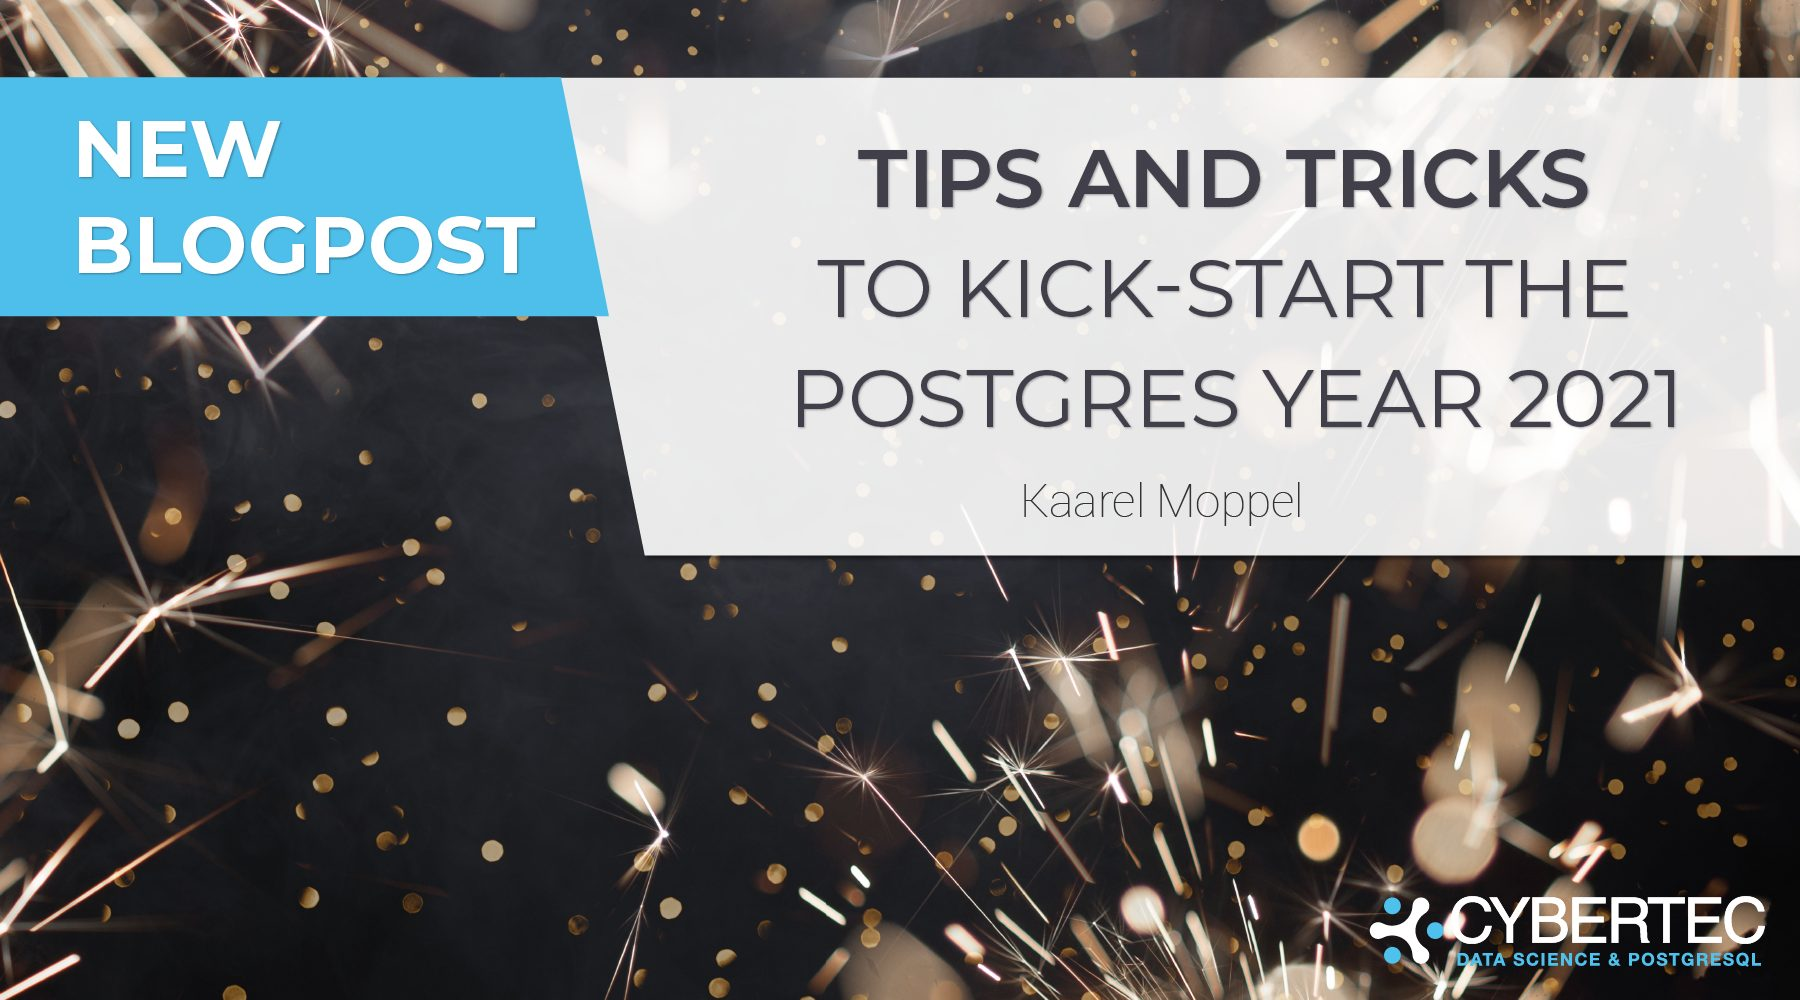 Tips and tricks to kick-start the Postgres year 2021